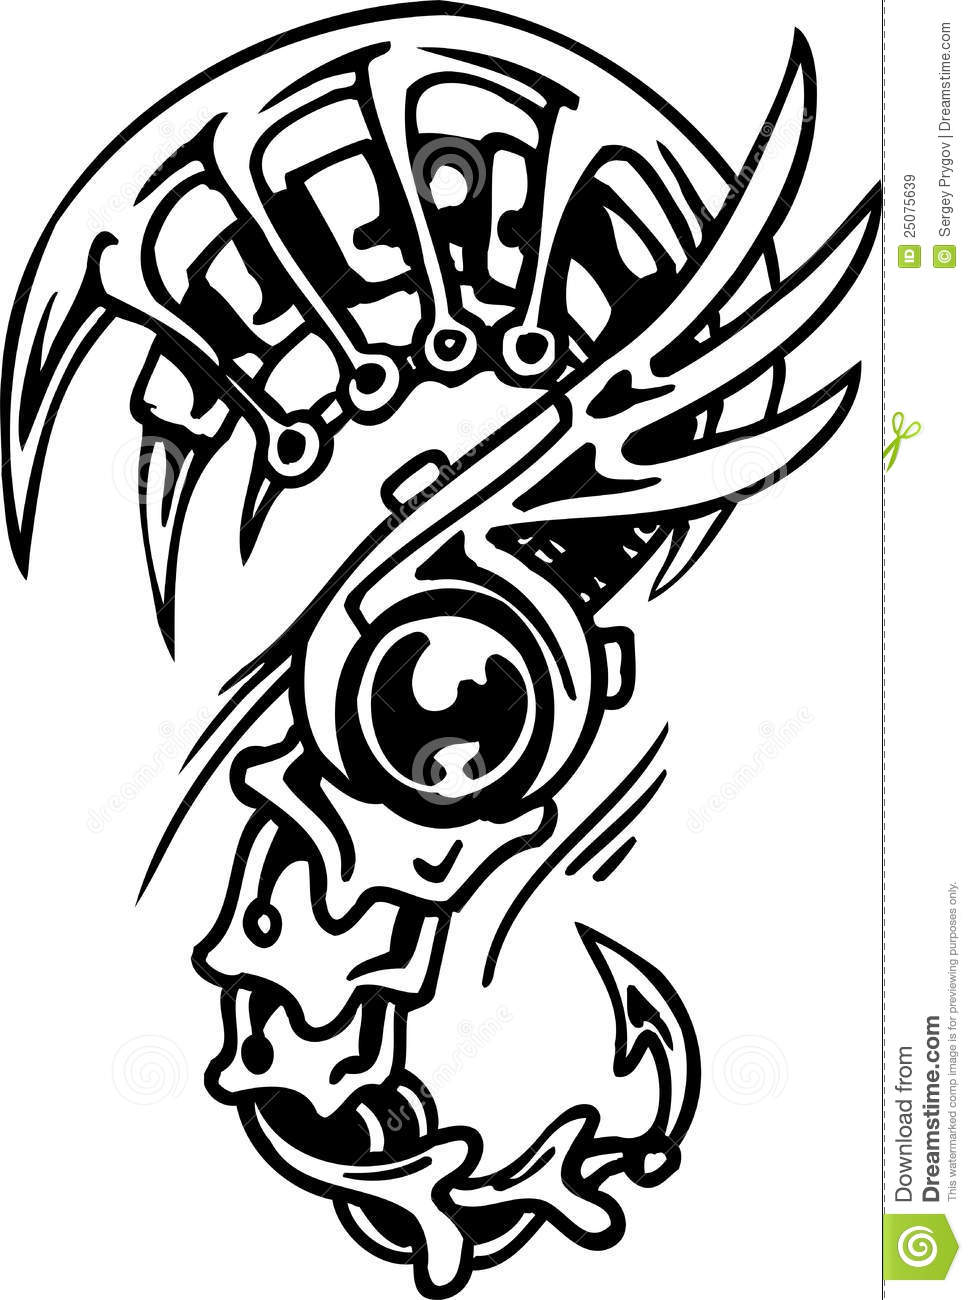 Biomechanical Designs Vector Illustration Royalty Free Ideas And Designs